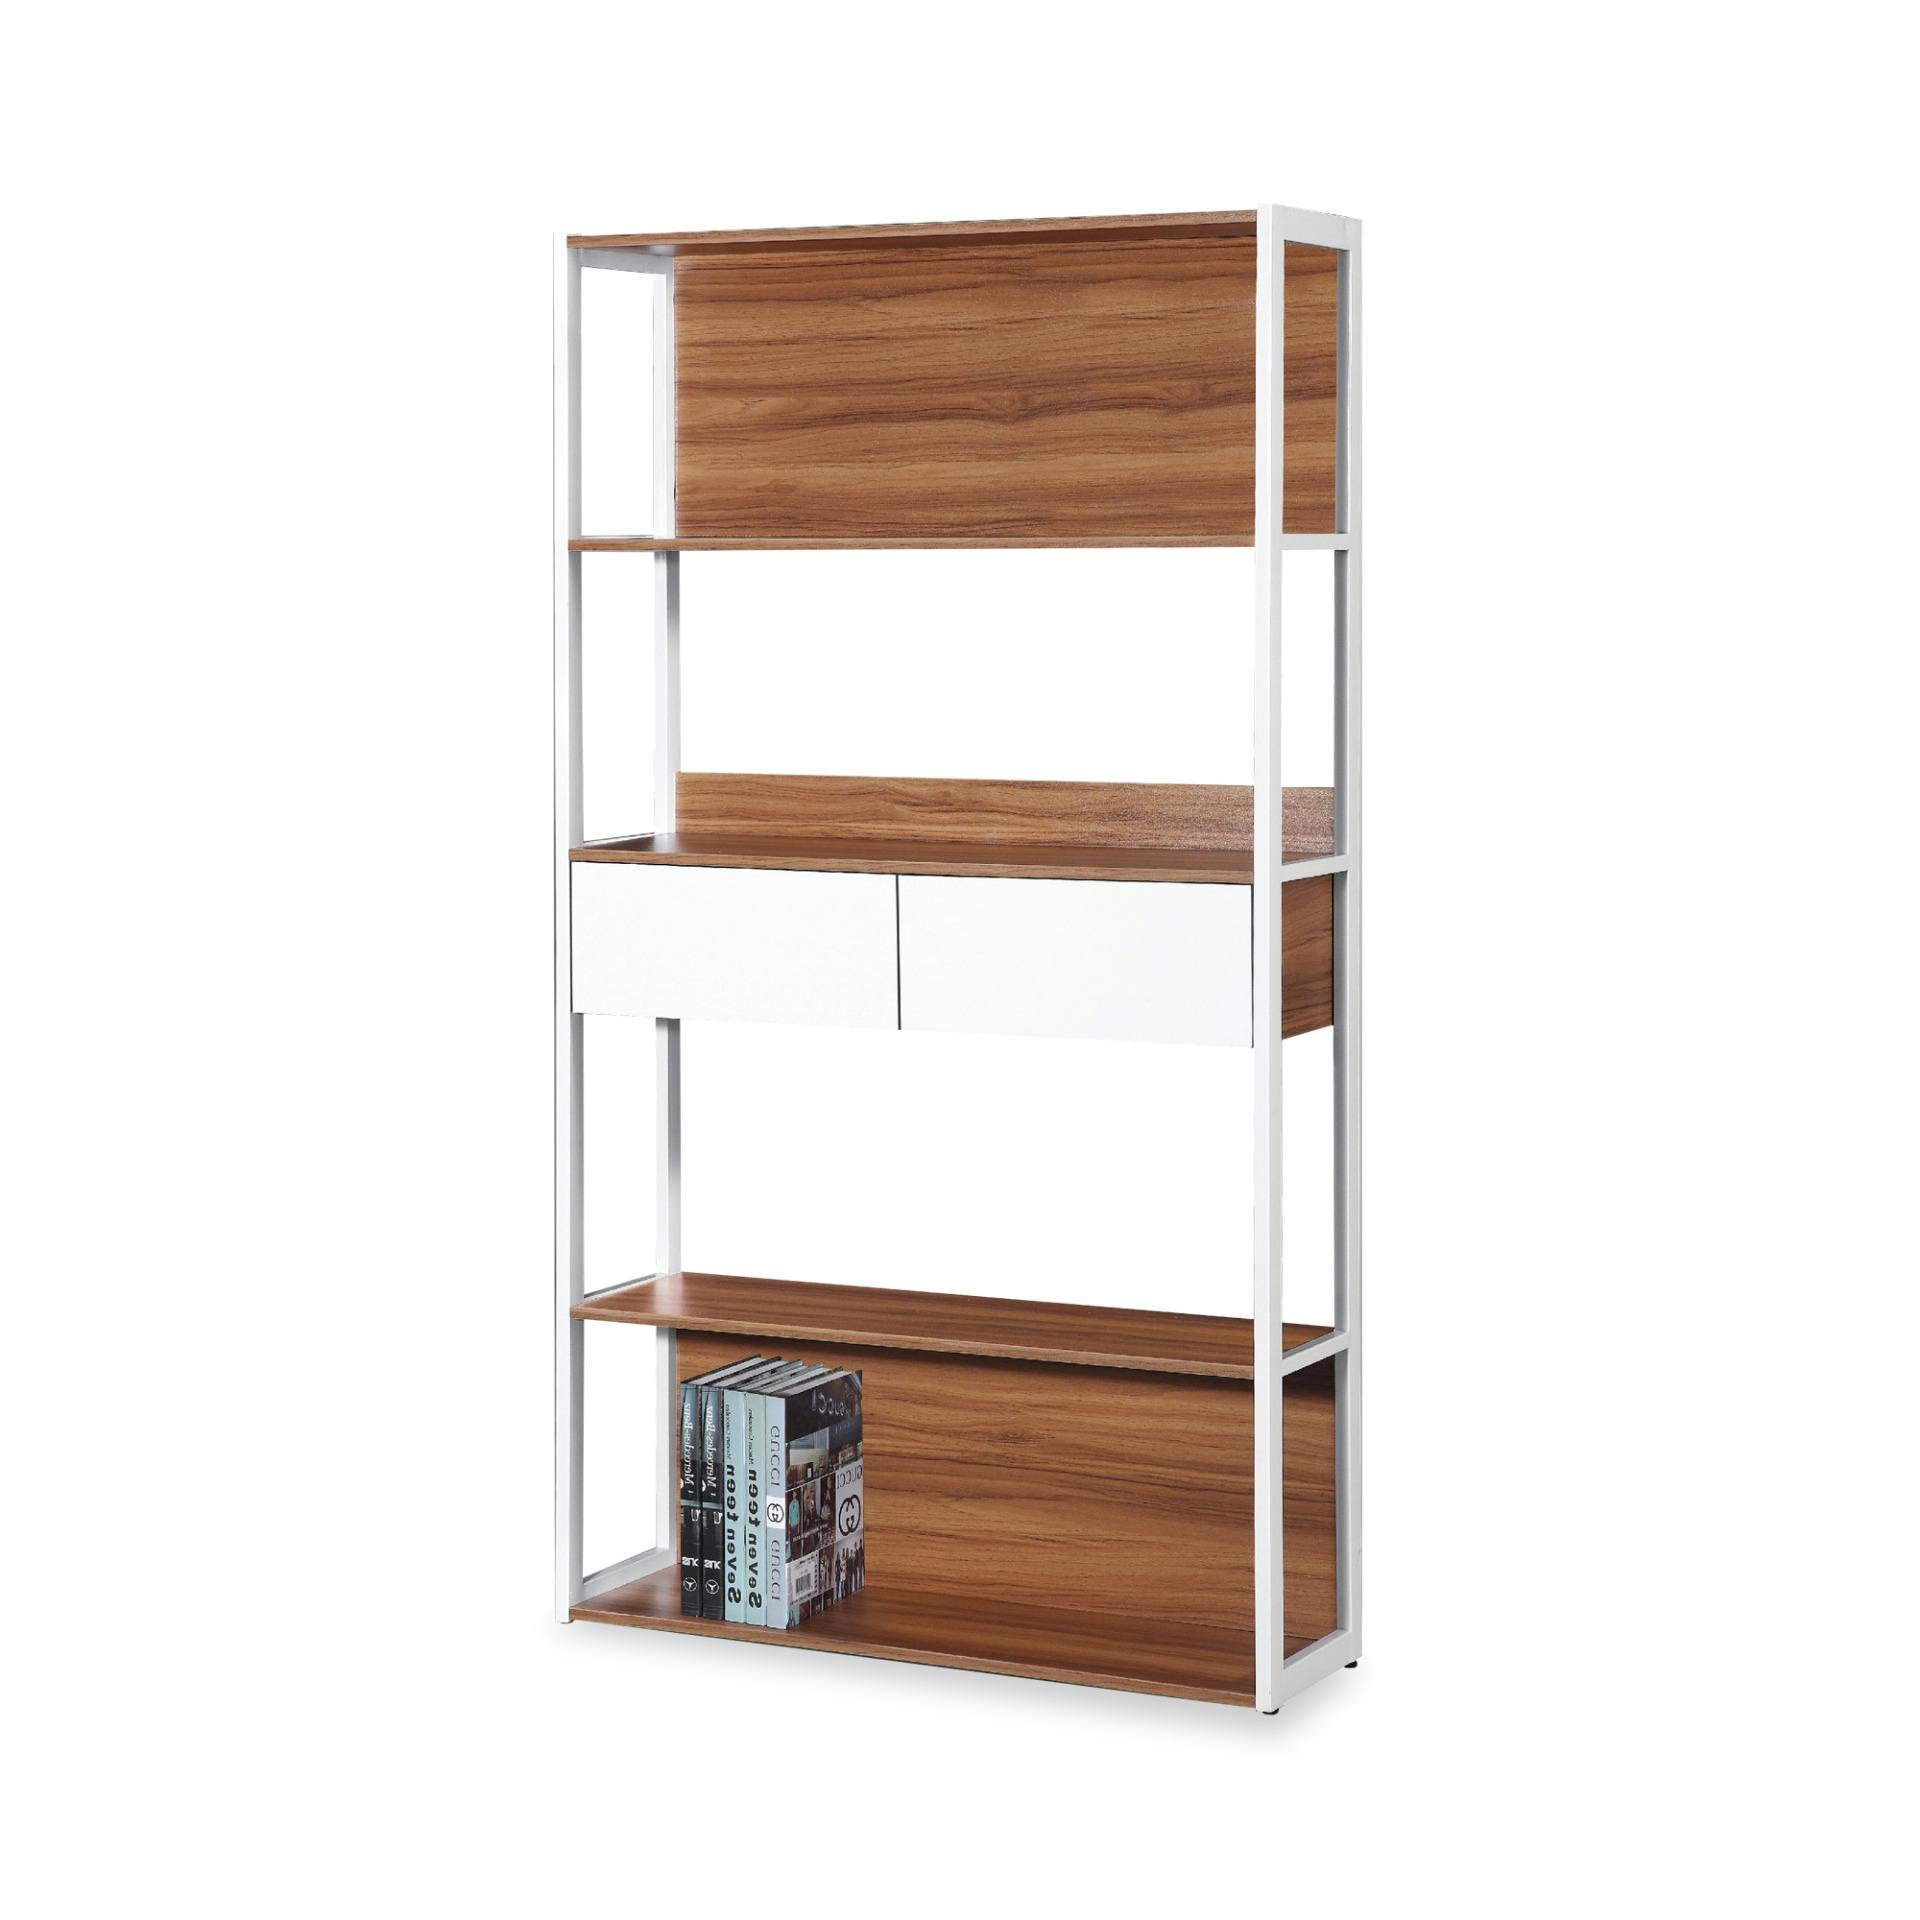 Amedeo Book Cabinet With Storage Shelves (FREE DELIVERY)(FREE ASSEMBLY)